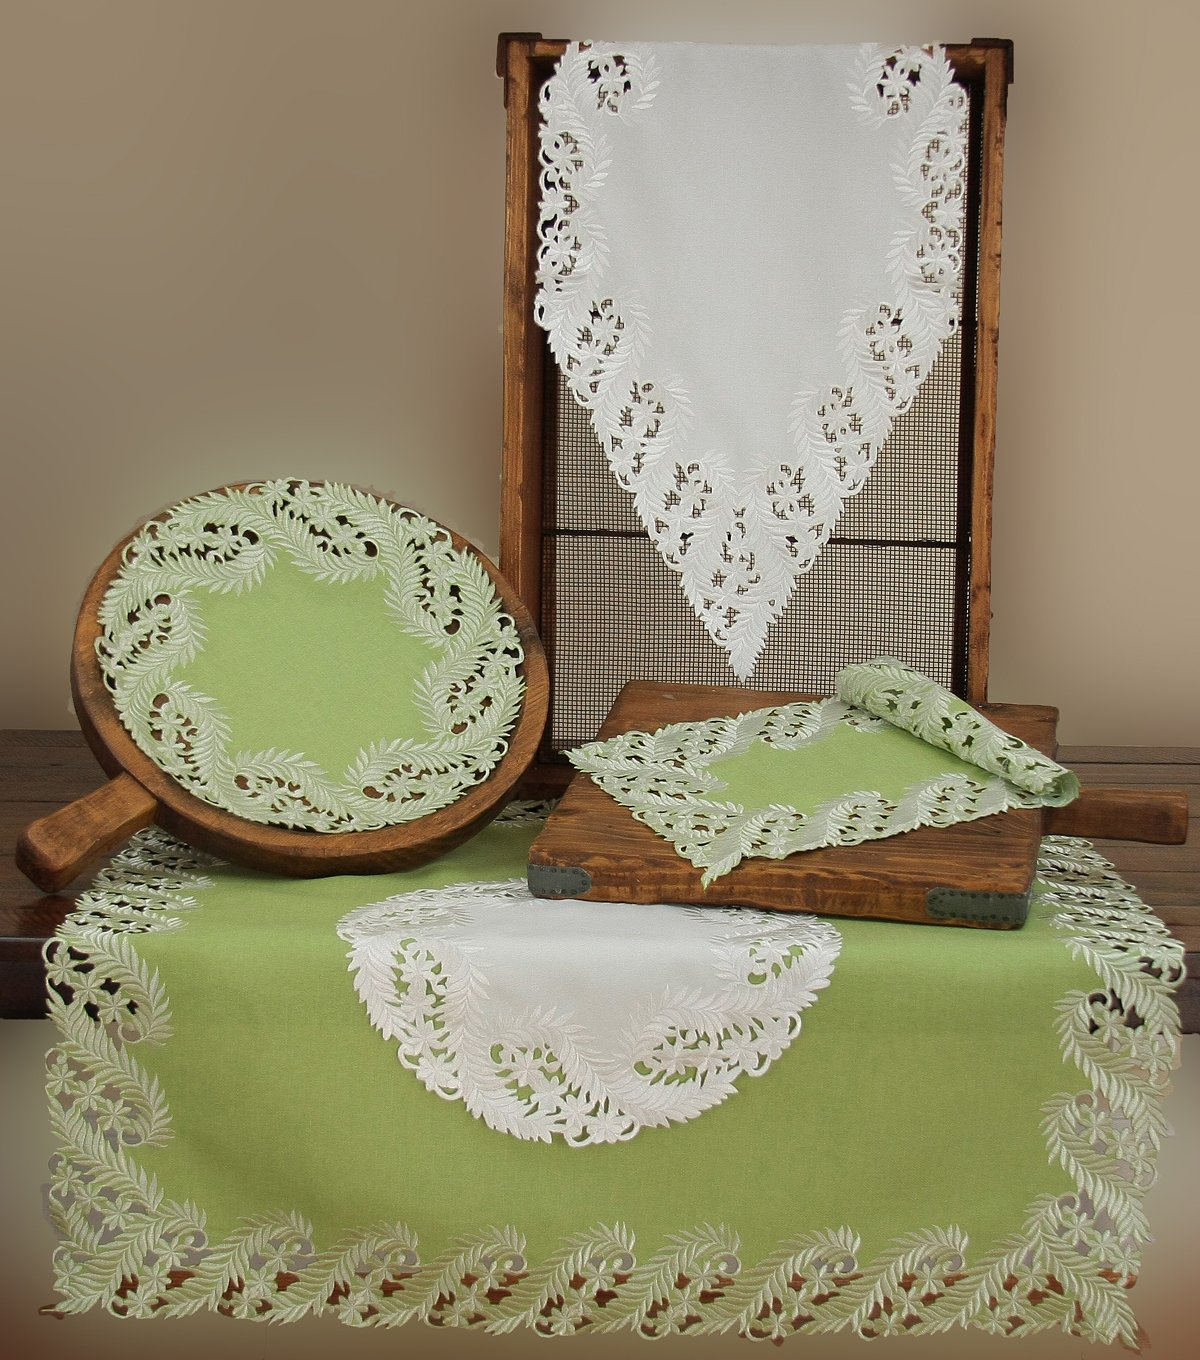 12 by 18-Inch,Green Xia Home Fashions Laurel Embroidered Cutwork Traycloth Set of 4